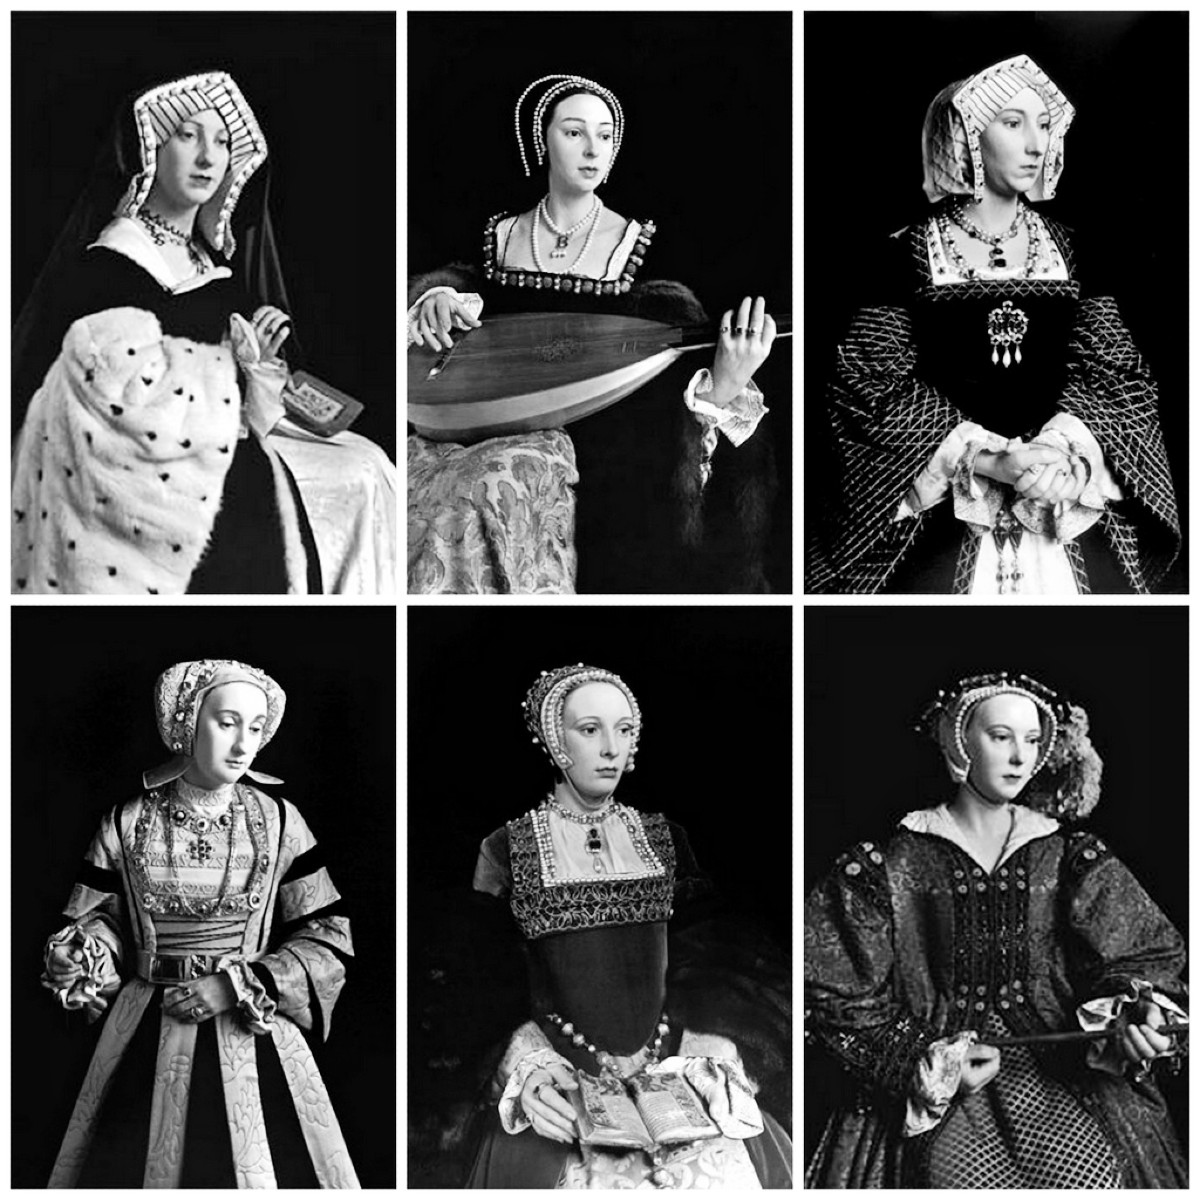 The Six Wives of Henry VIII the six wives of henry viii 22322667 1024 1024